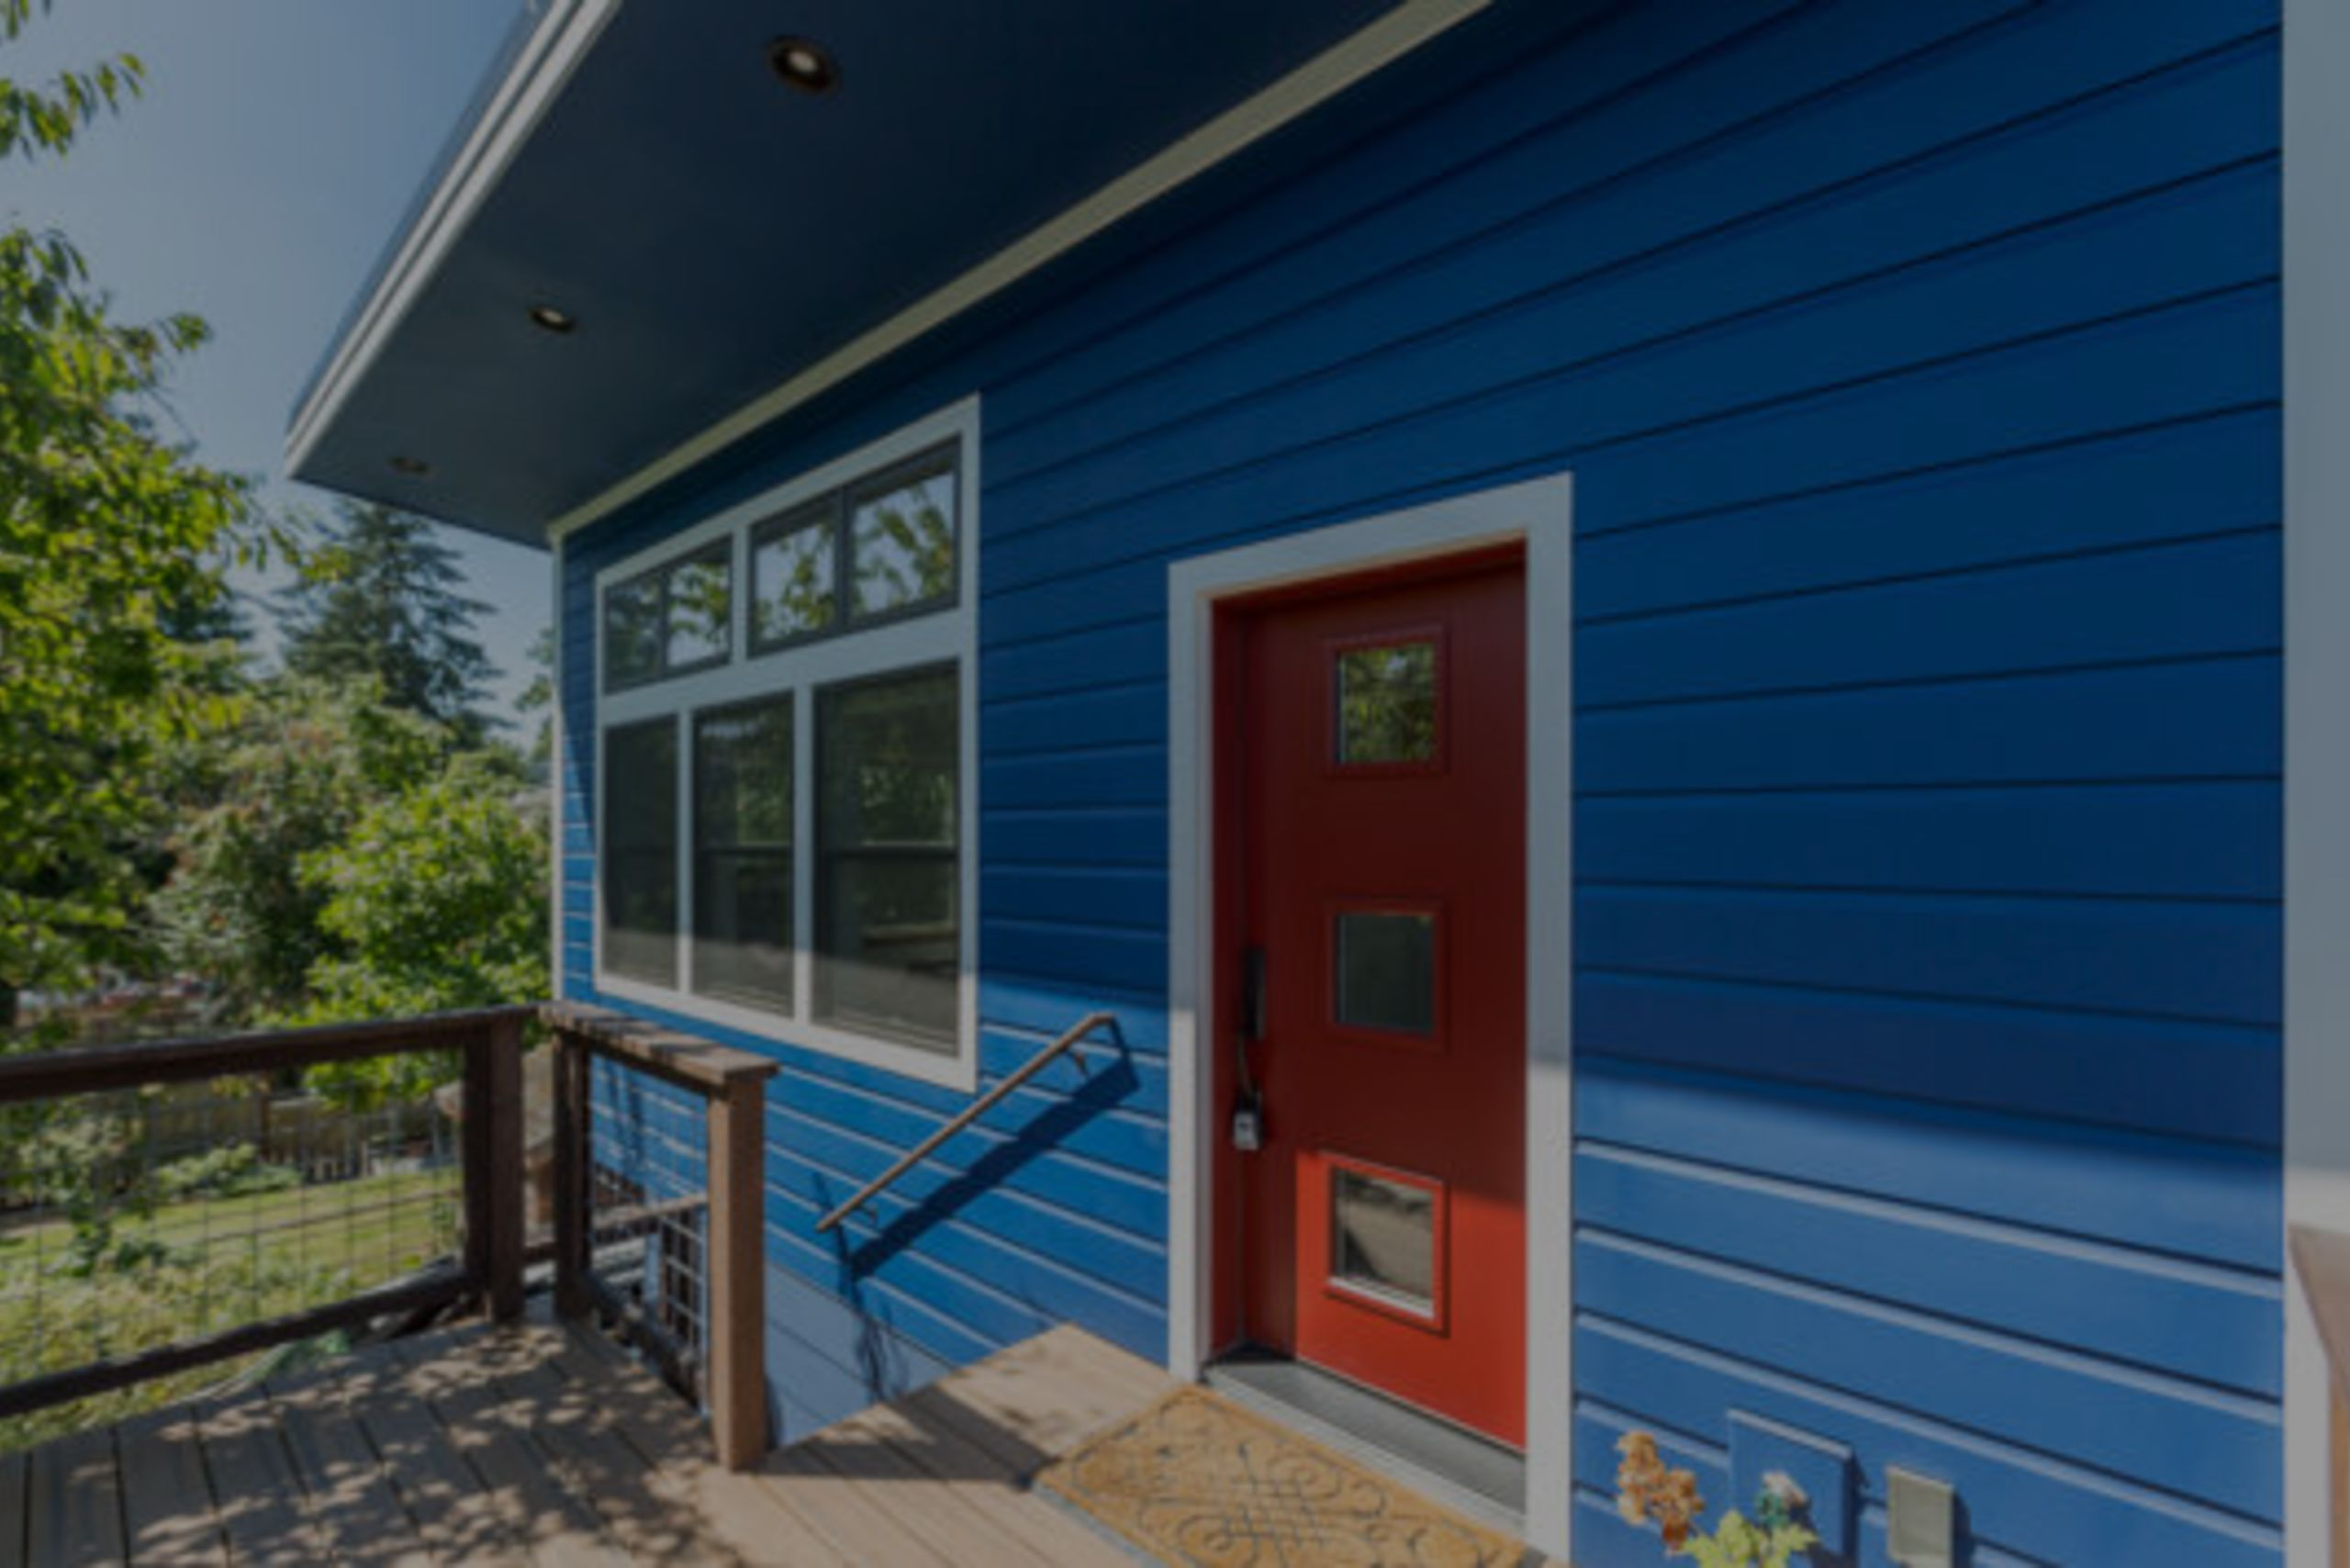 Seattle Backyard Cottages: To DADU Or Not To DADU?